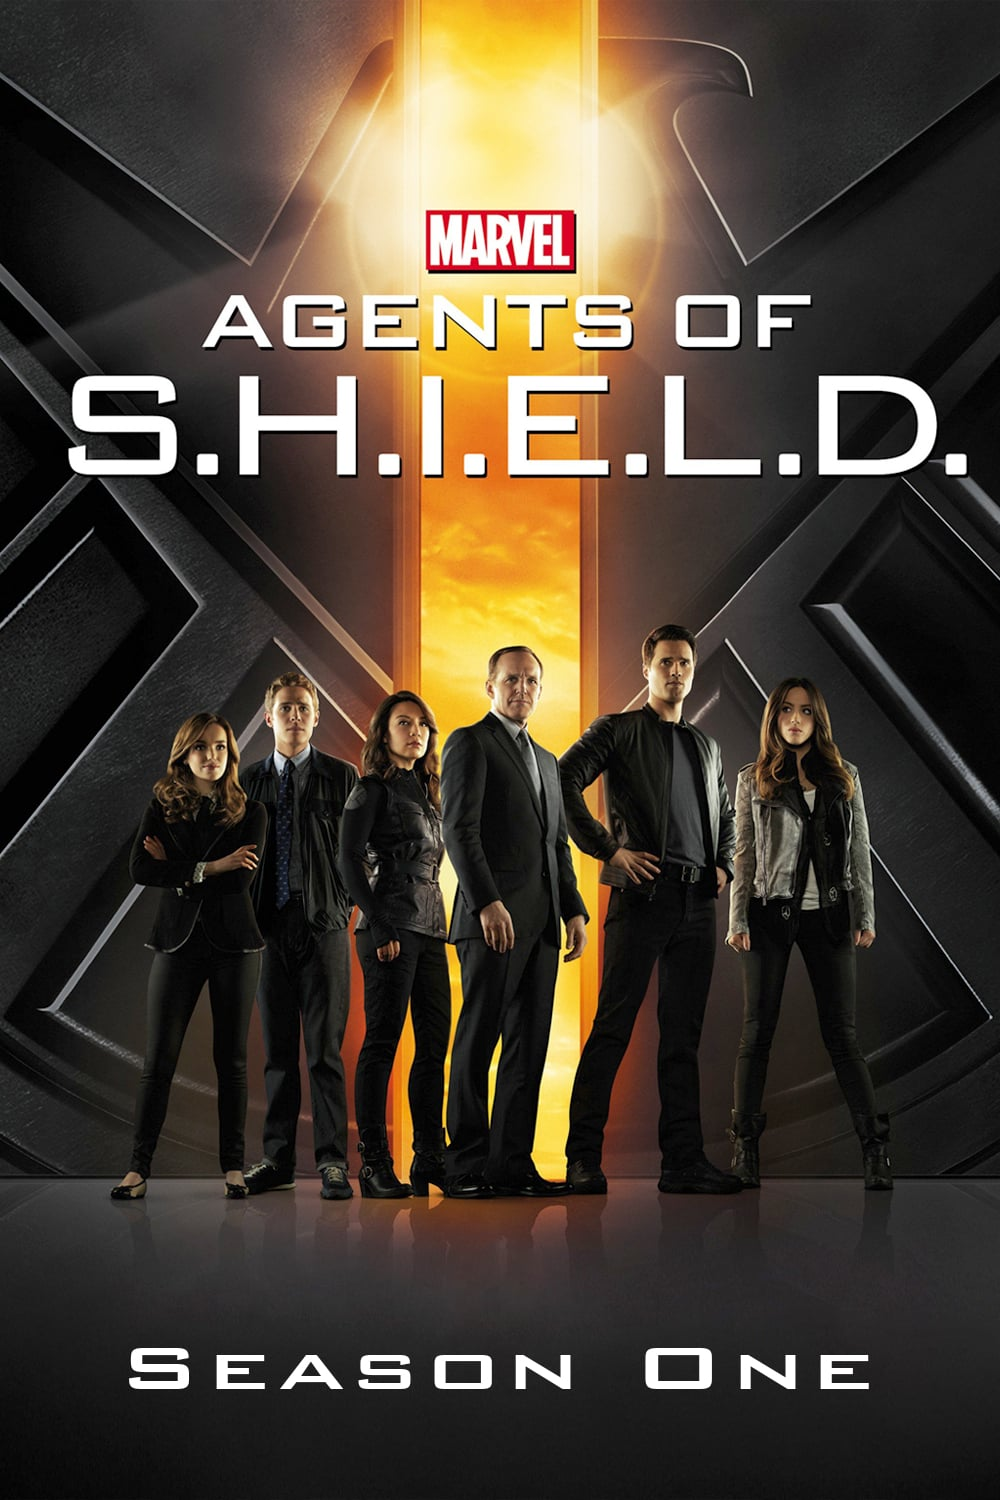 WATCH MARVEL'S AGENTS OF S H I E L D  SEASON 1 PUTLOCKERS TV